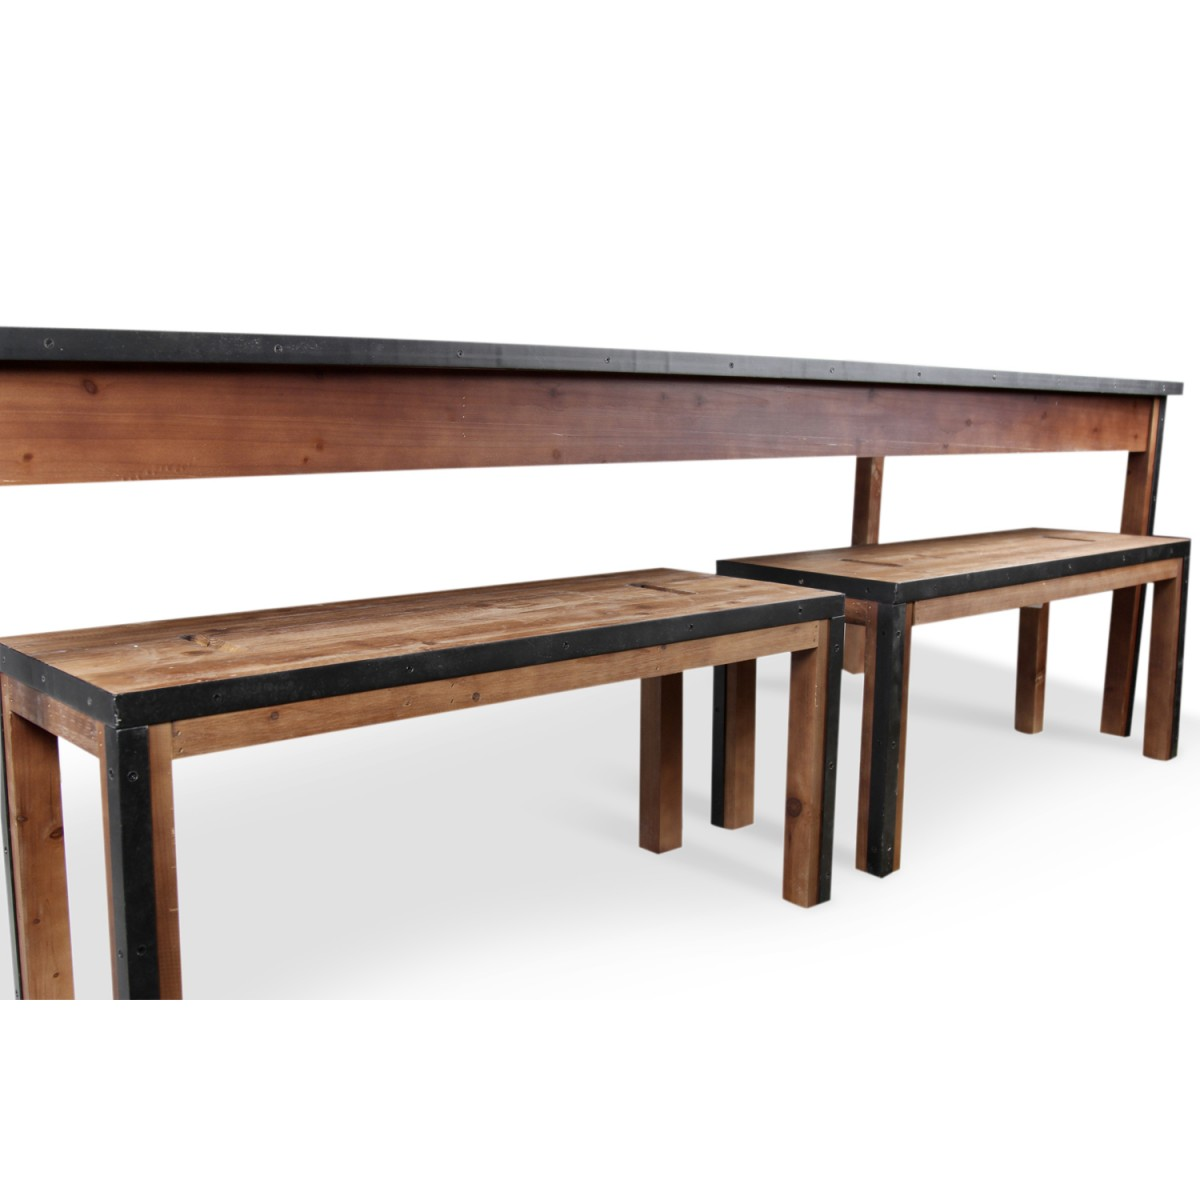 Table à manger Bois Marron 244,5x80,5x76,5cm